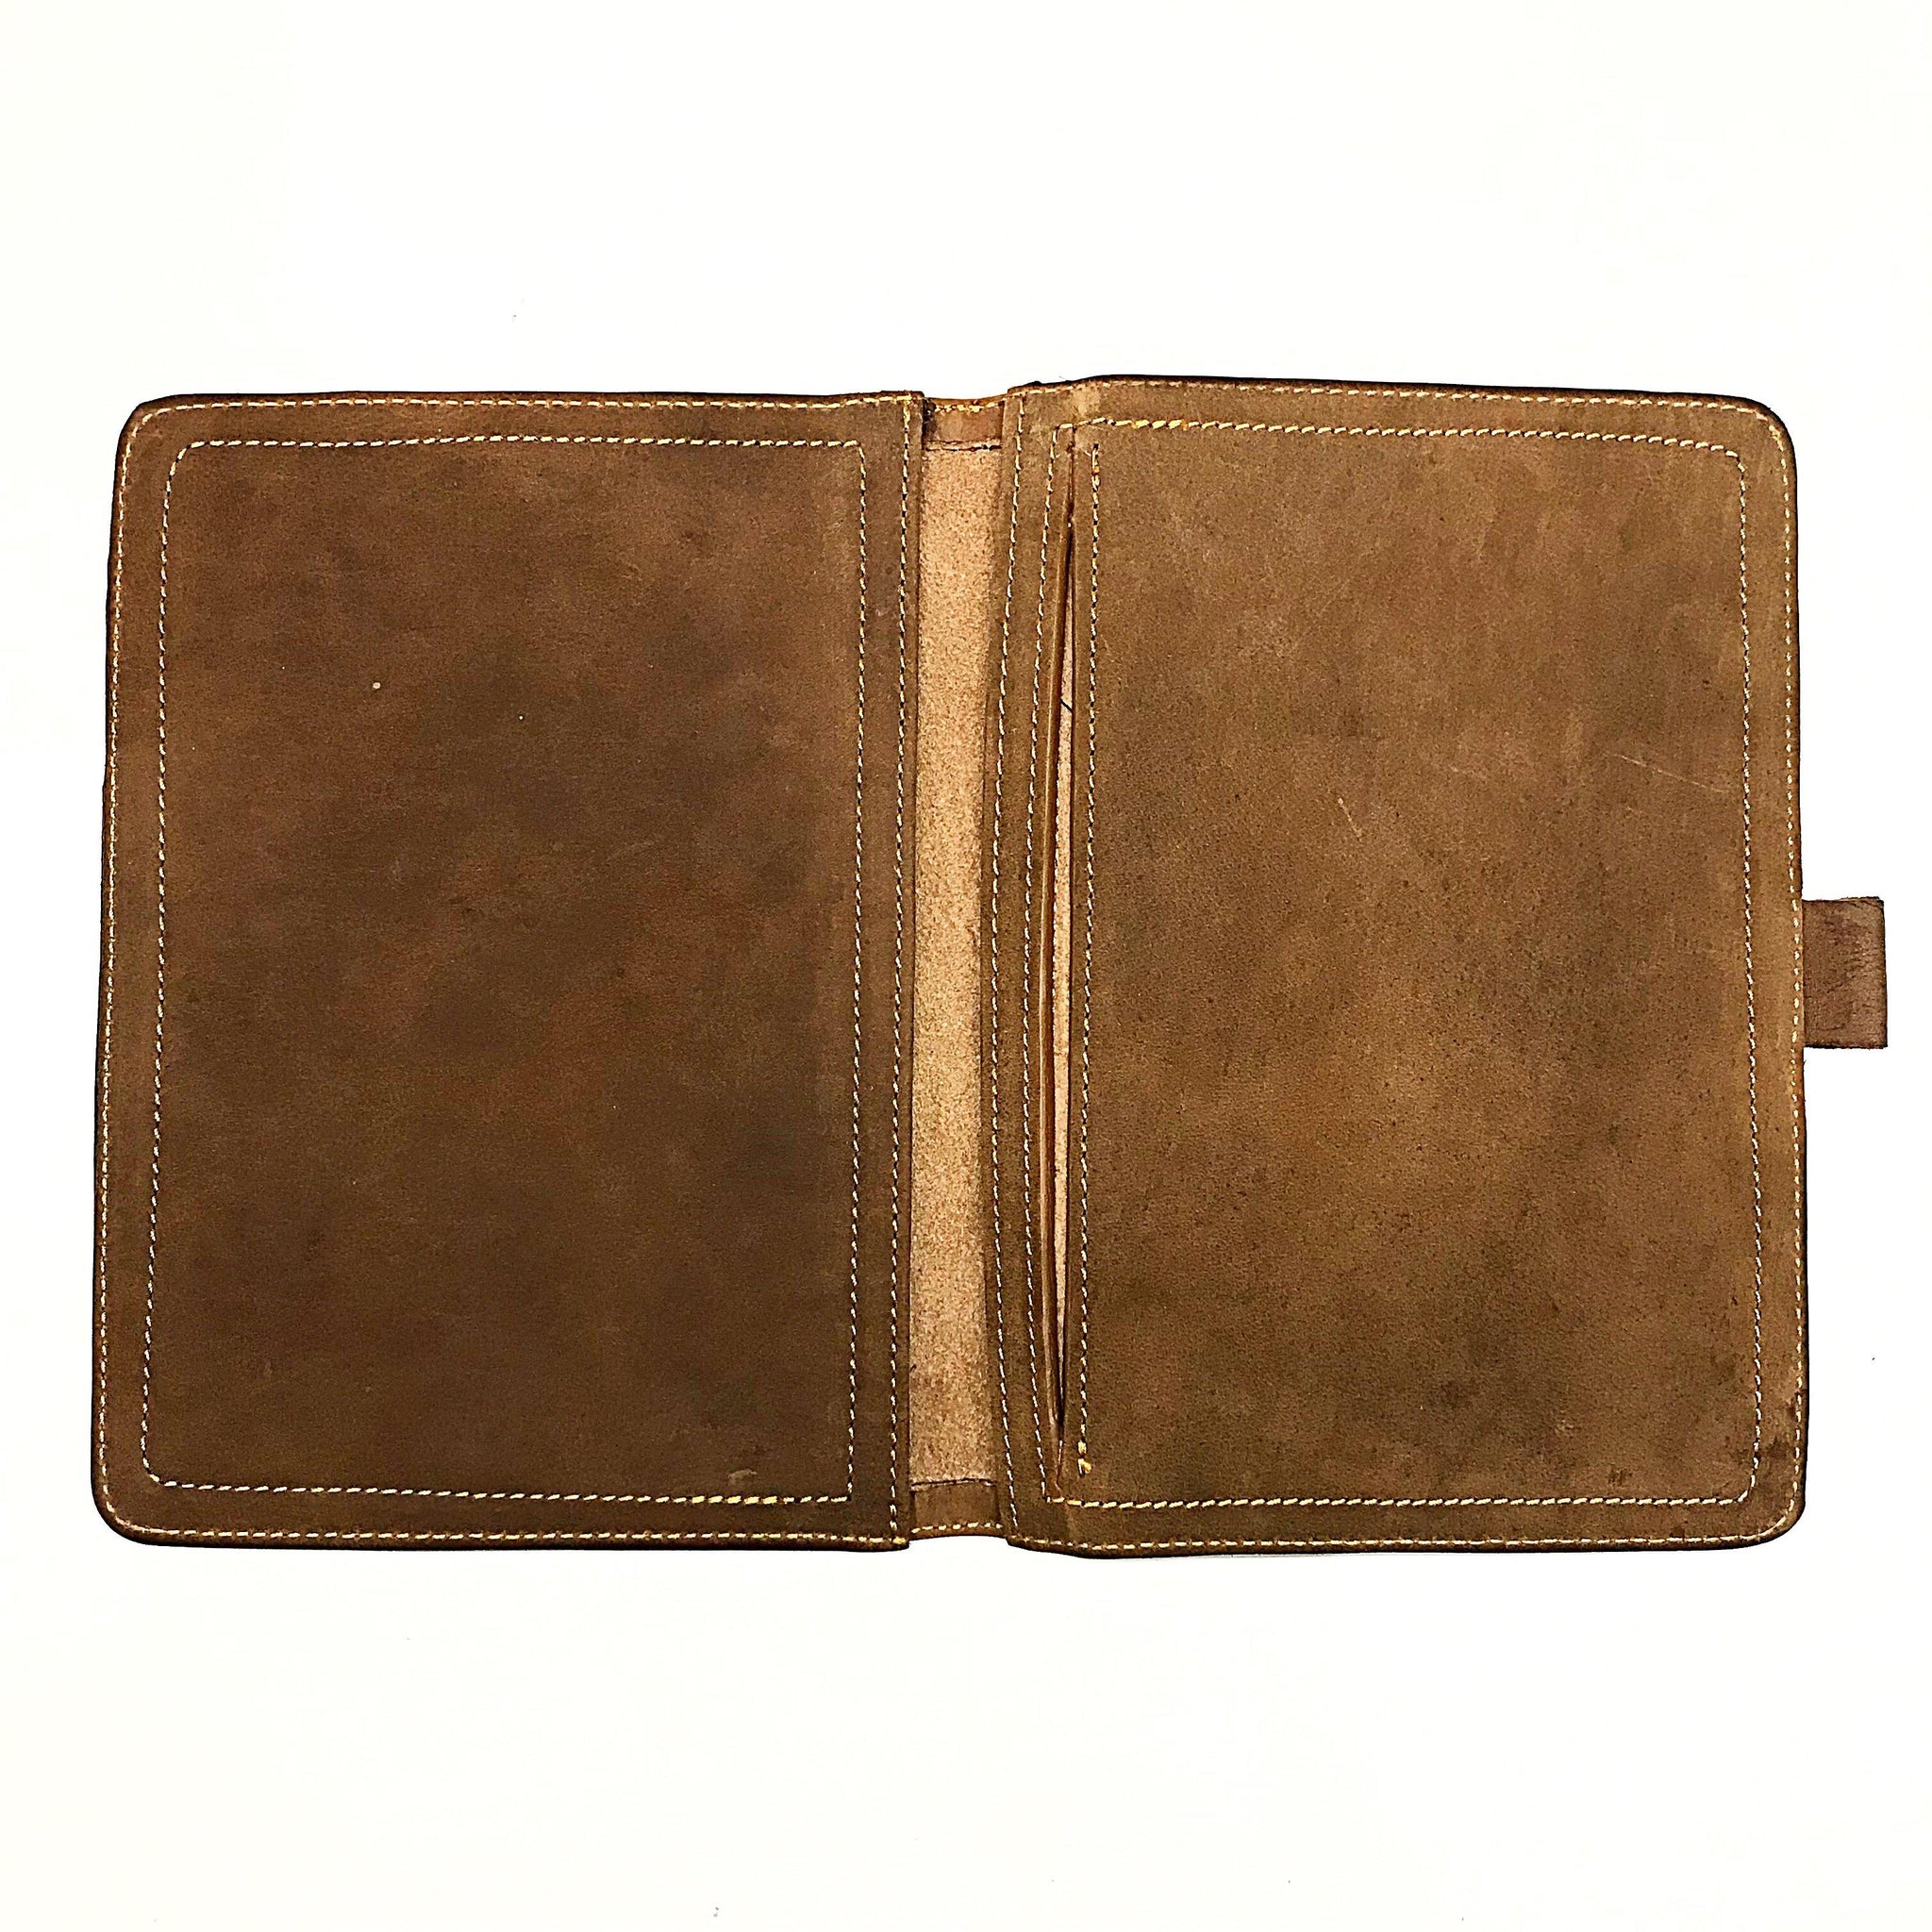 Indepal Leather JOURNAL Leather Notebook Cover A5